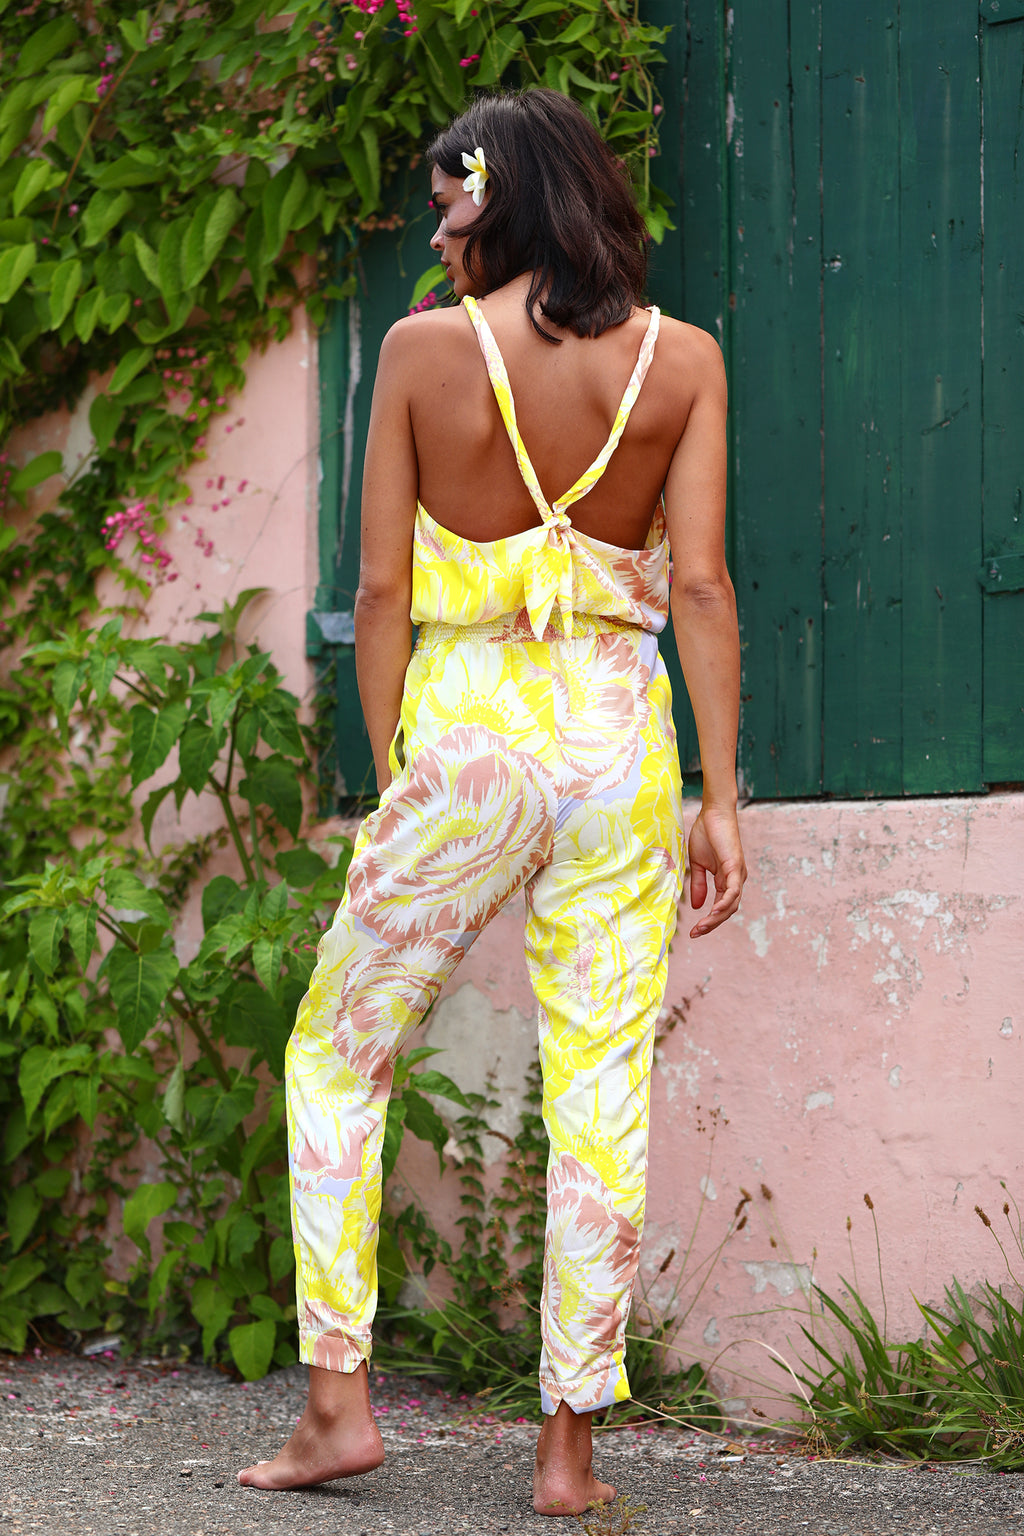 Jumpsuit with tie knot back in Lemom Love You print: bright yellow background with soft blush and white flower pattern.